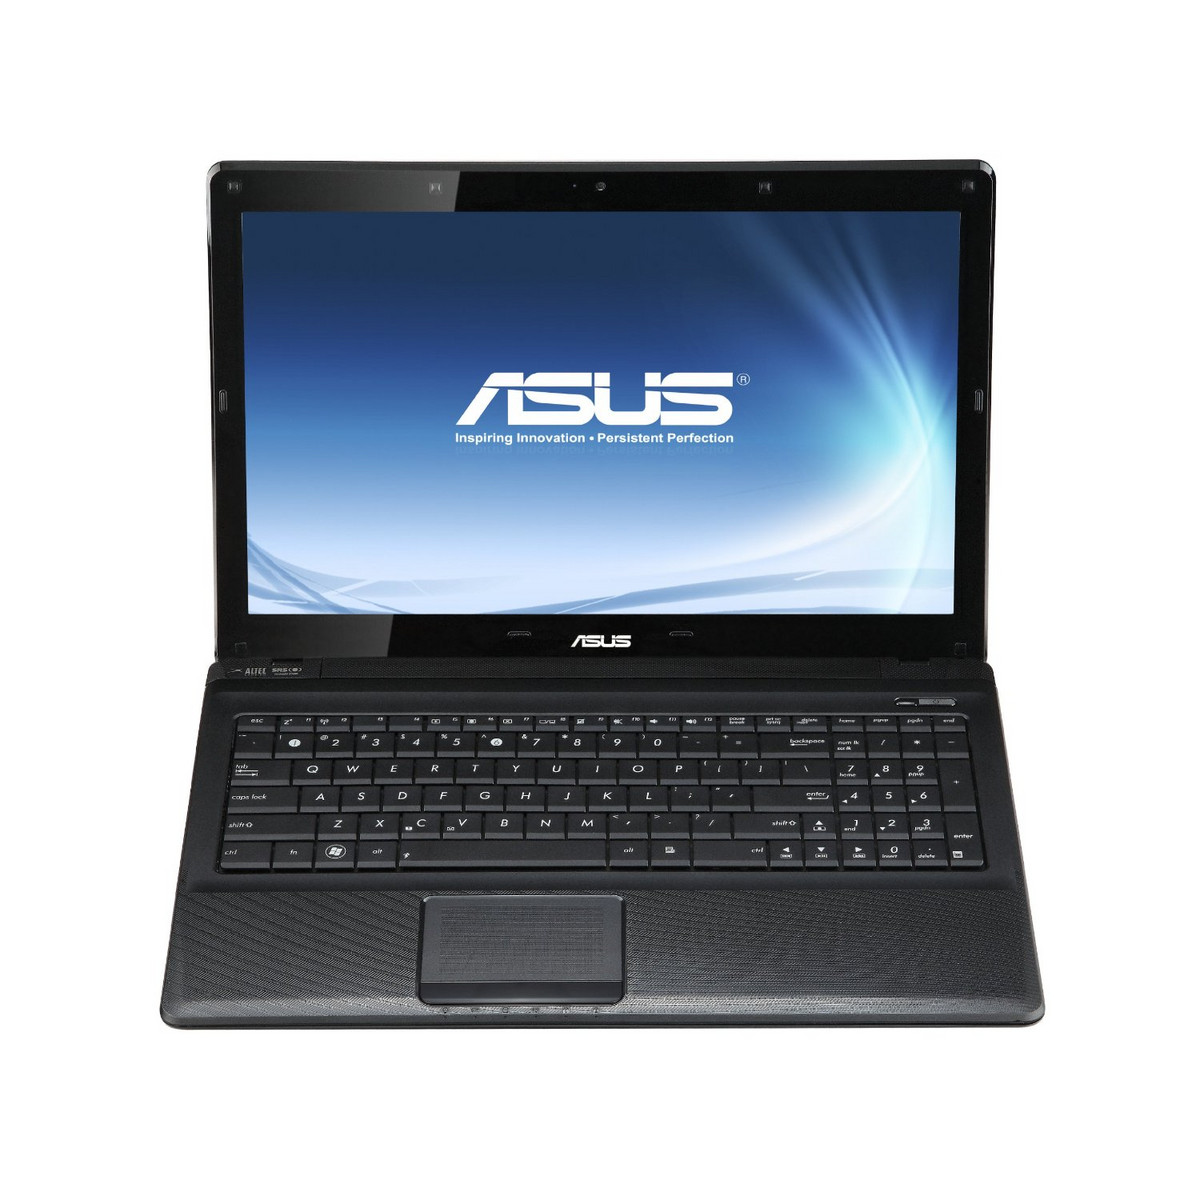 Asus K52JB Notebook Intel Turbo Boost Monitor 64 BIT Driver